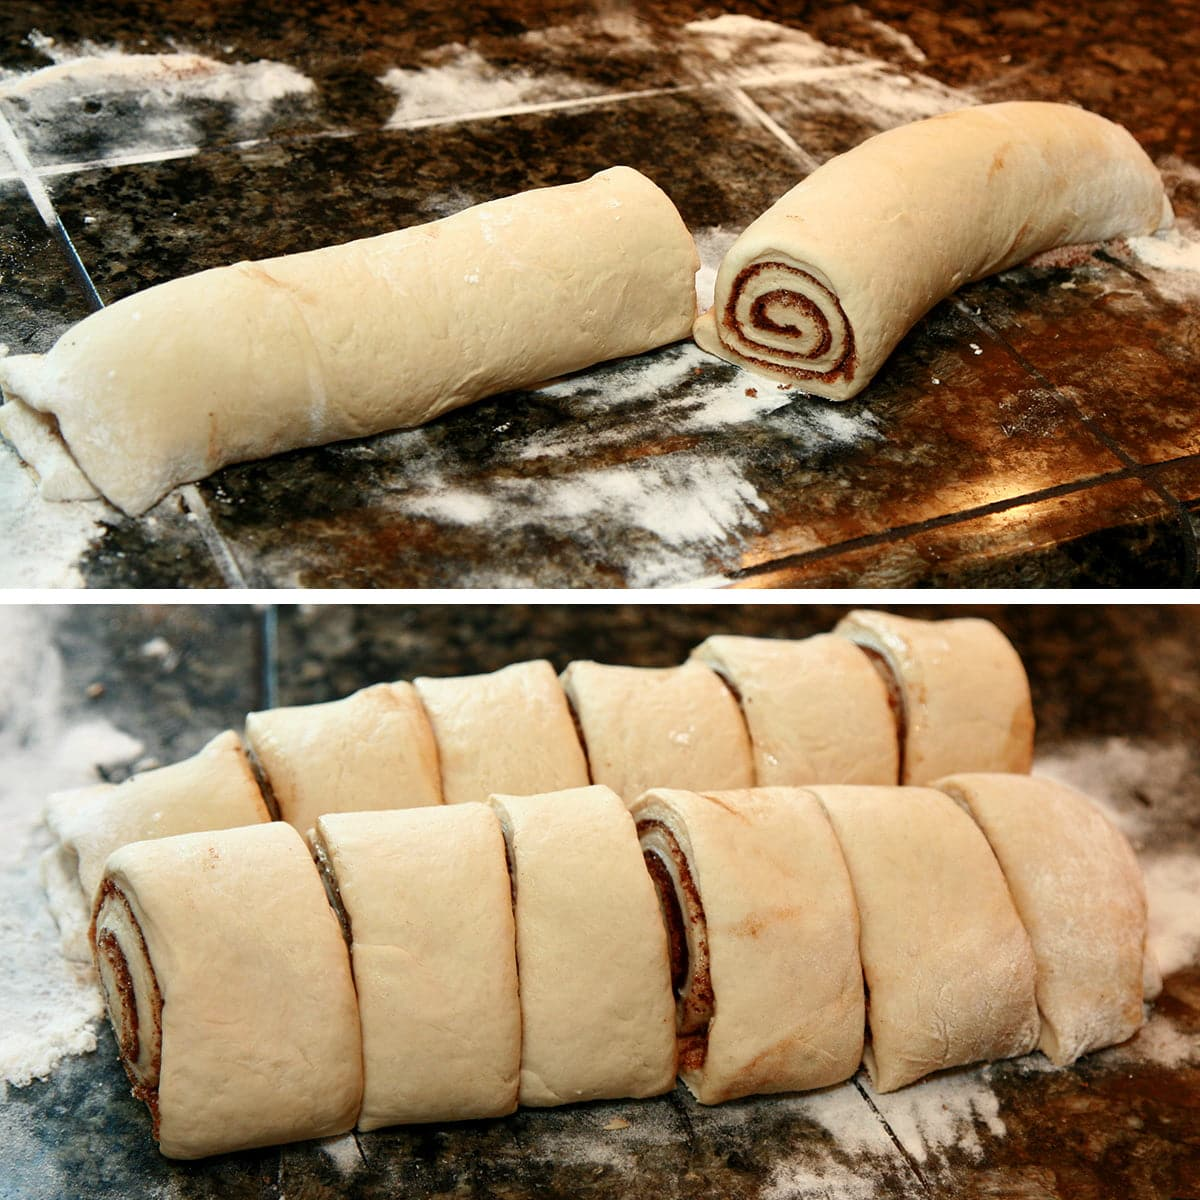 A two part compilation image showing the roll of chai cinnamon buns cut in half, then cut into a total of 12 buns.